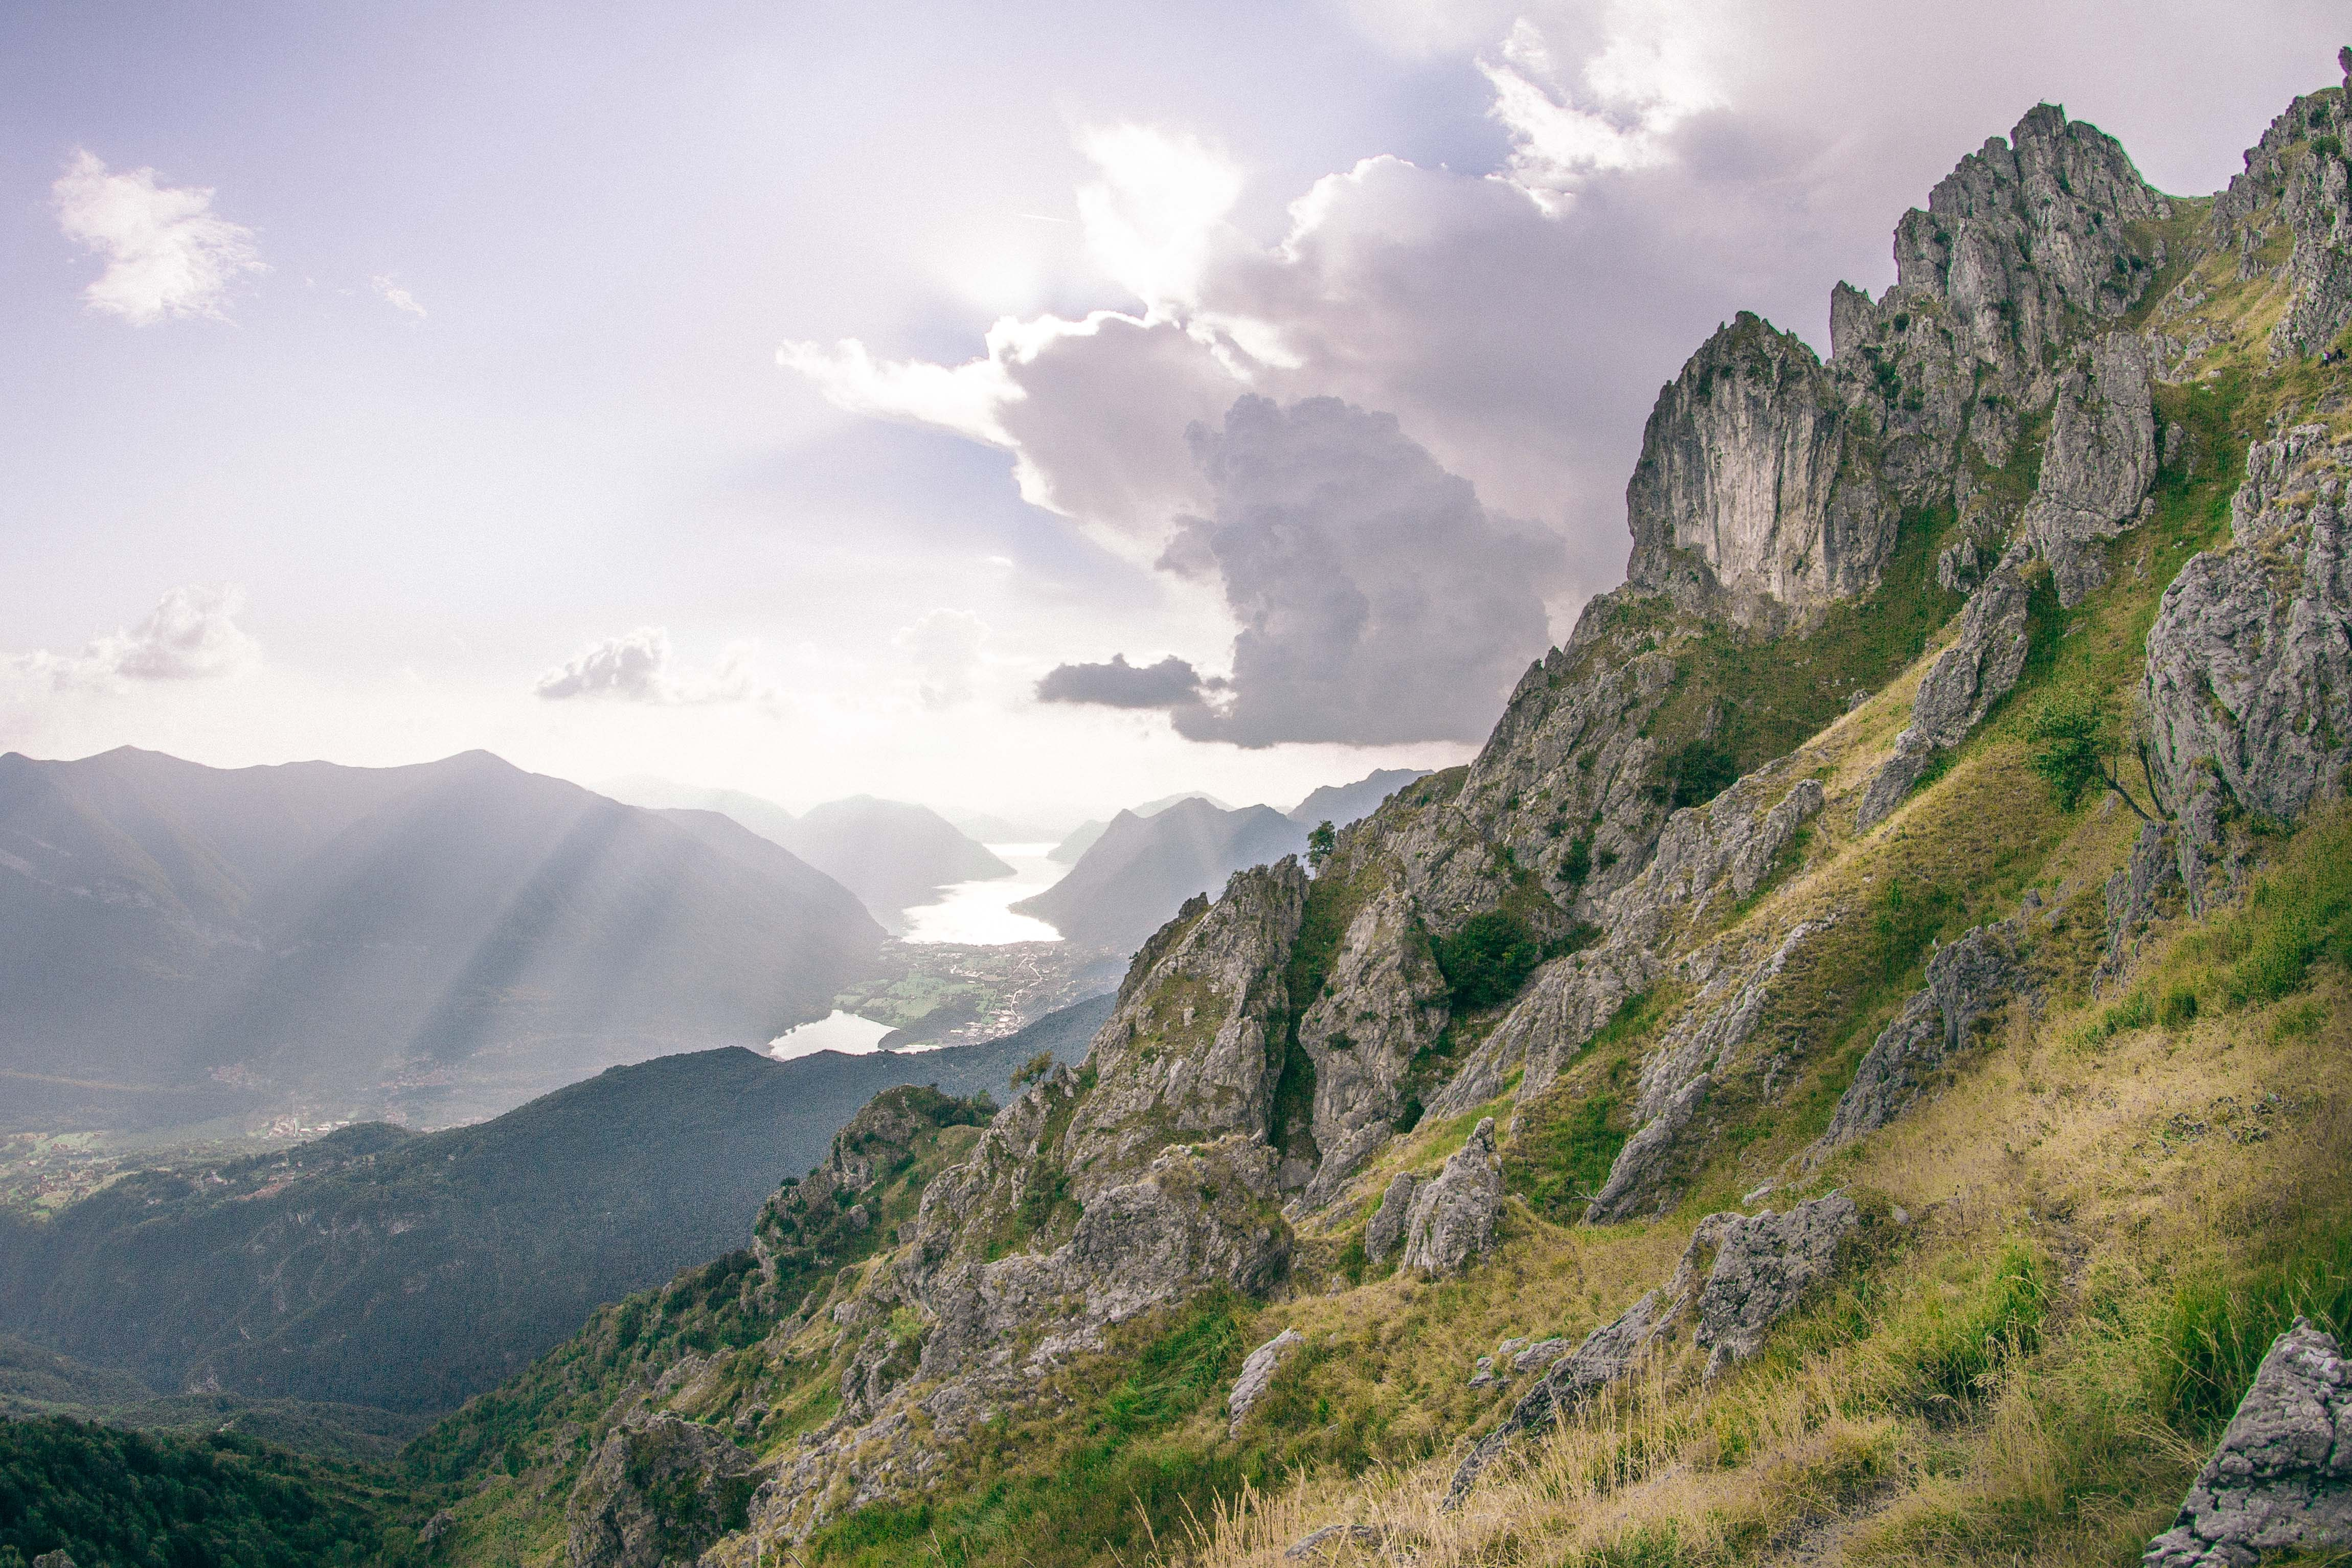 Low Angle Photography Of Gray Mountain Side Covered With